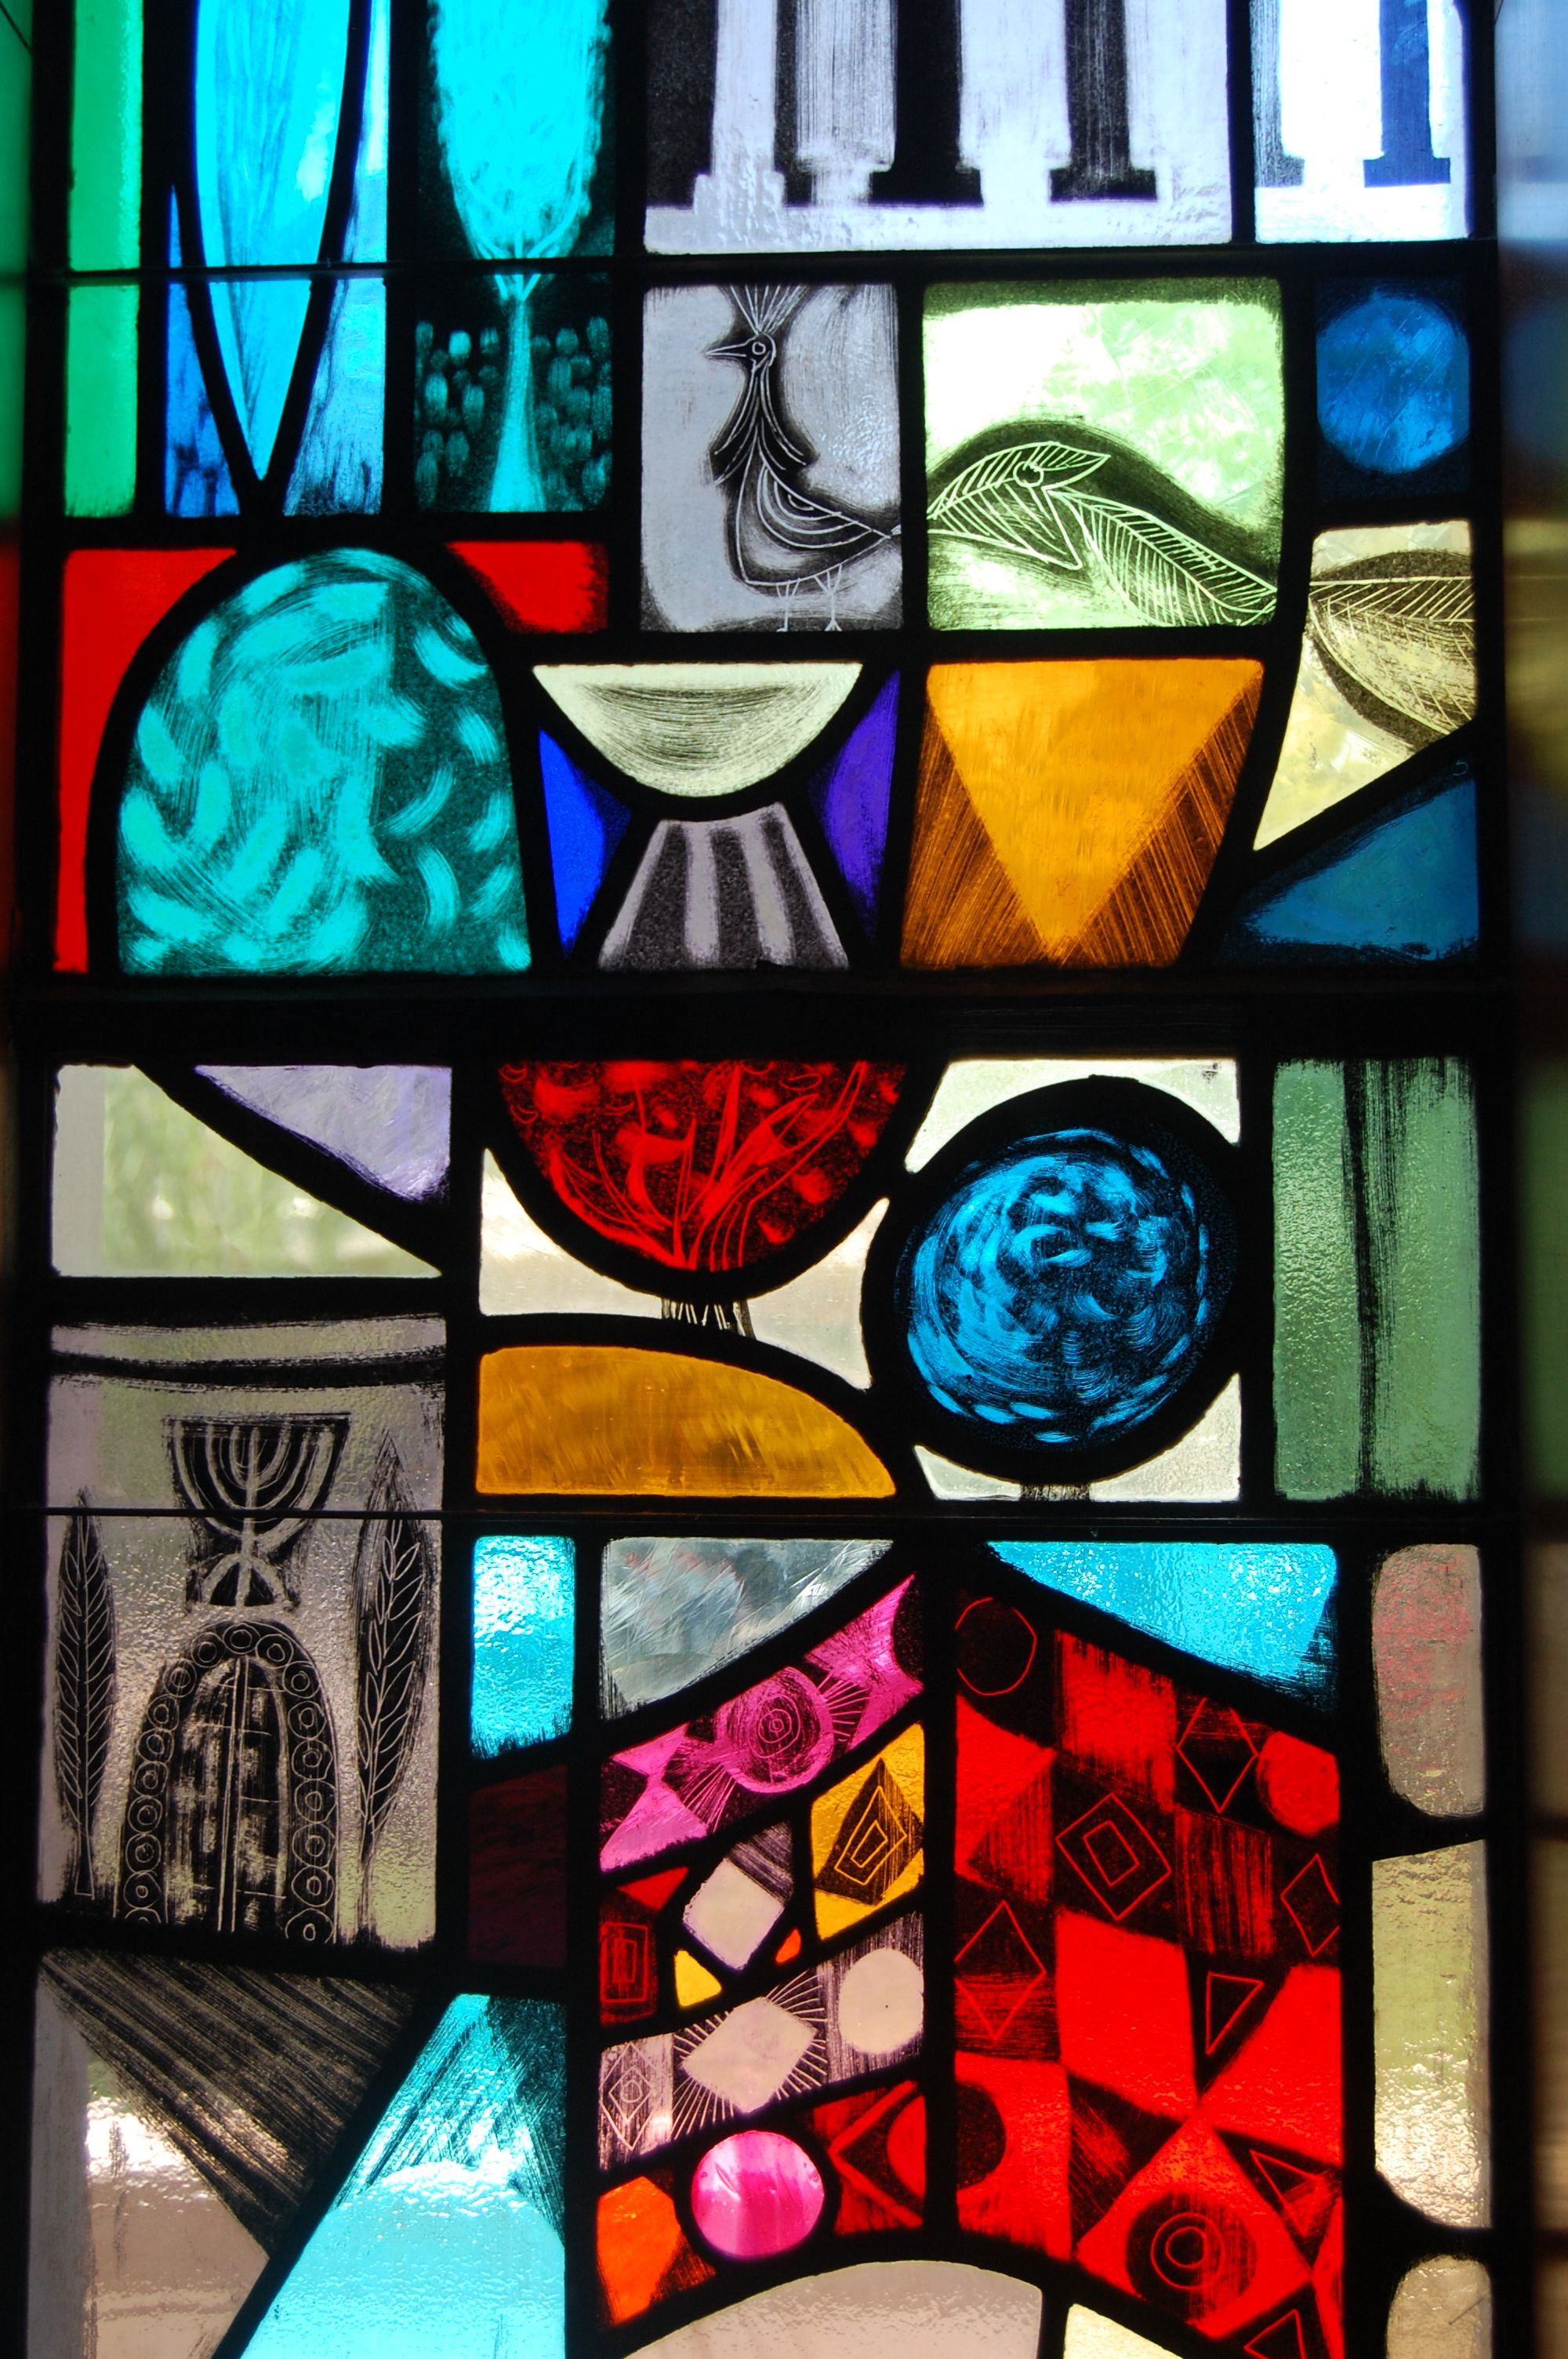 Stained Glass Window at Ahavath Achim Synagogue - Atlanta